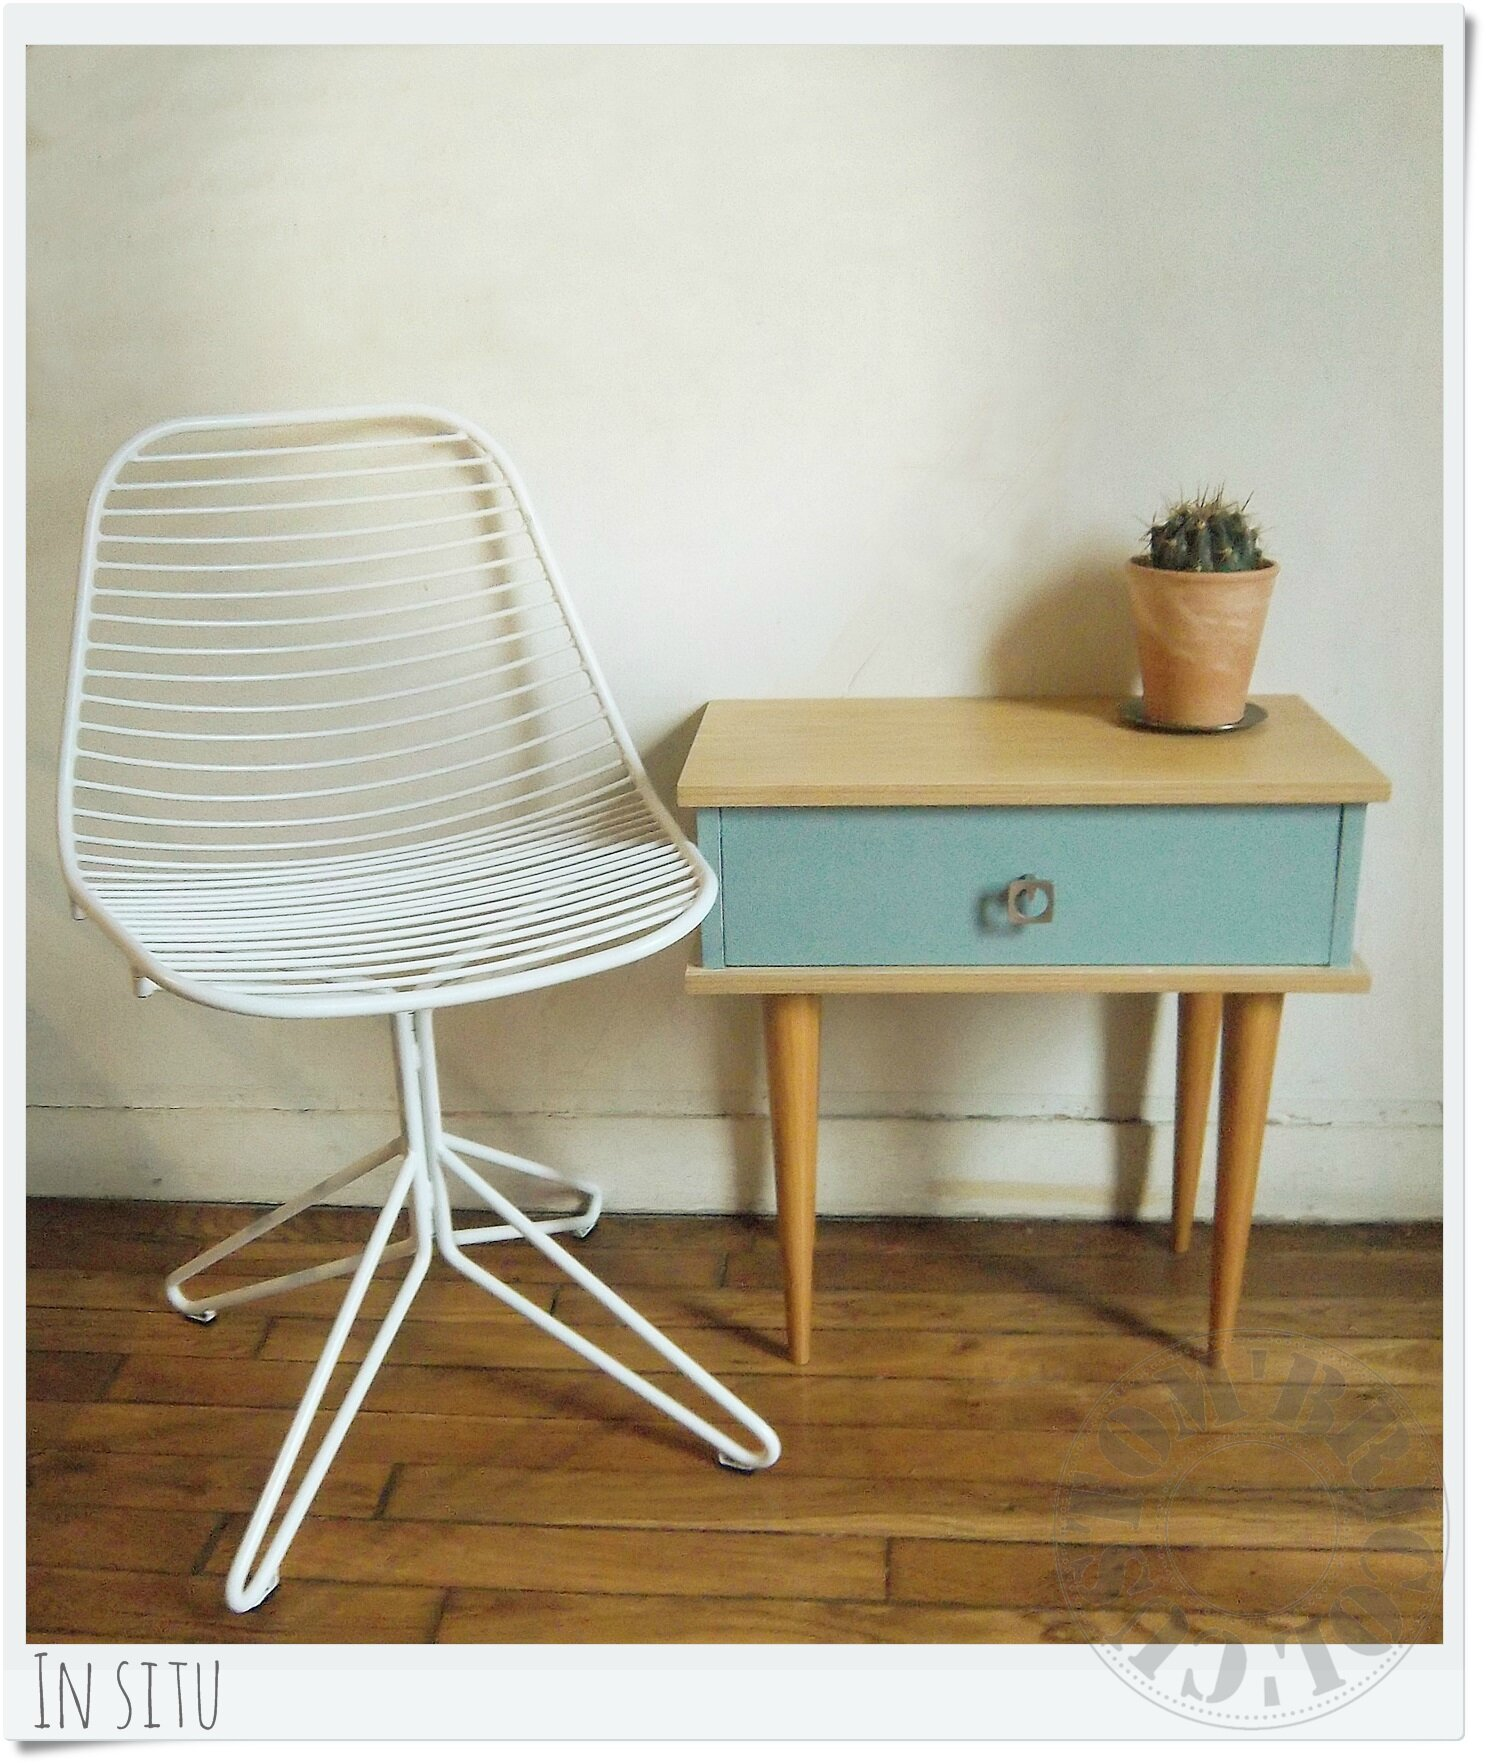 Chevet vintage bleu in situ 2 photo de bureaux - Table de chevet retro ...